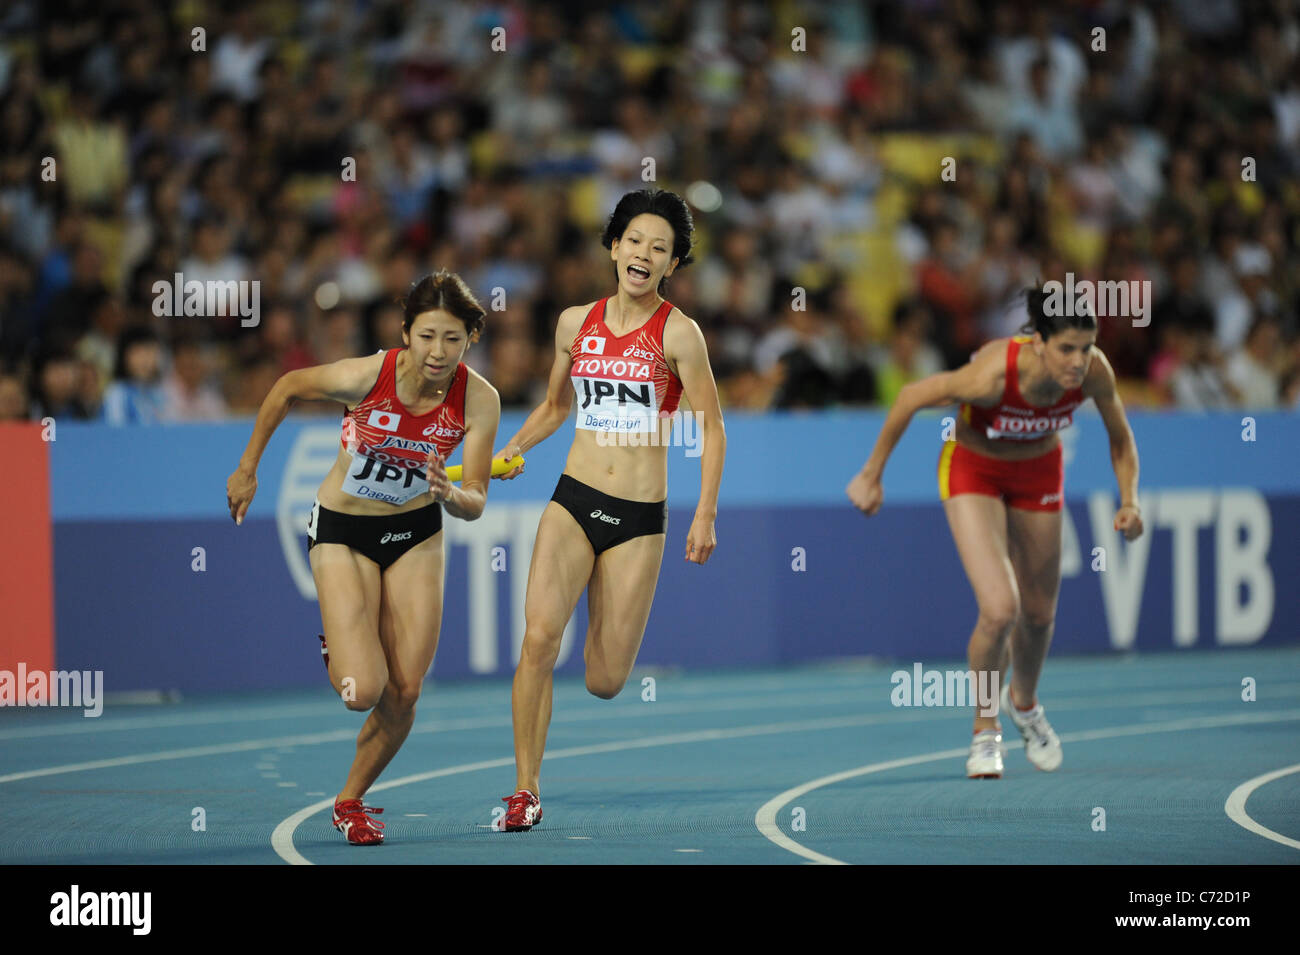 Saori Imai and  Chisato Fukushima (JPN) perform for the women's 4x100m relay heats at the 13th IAAF World Championships. - Stock Image